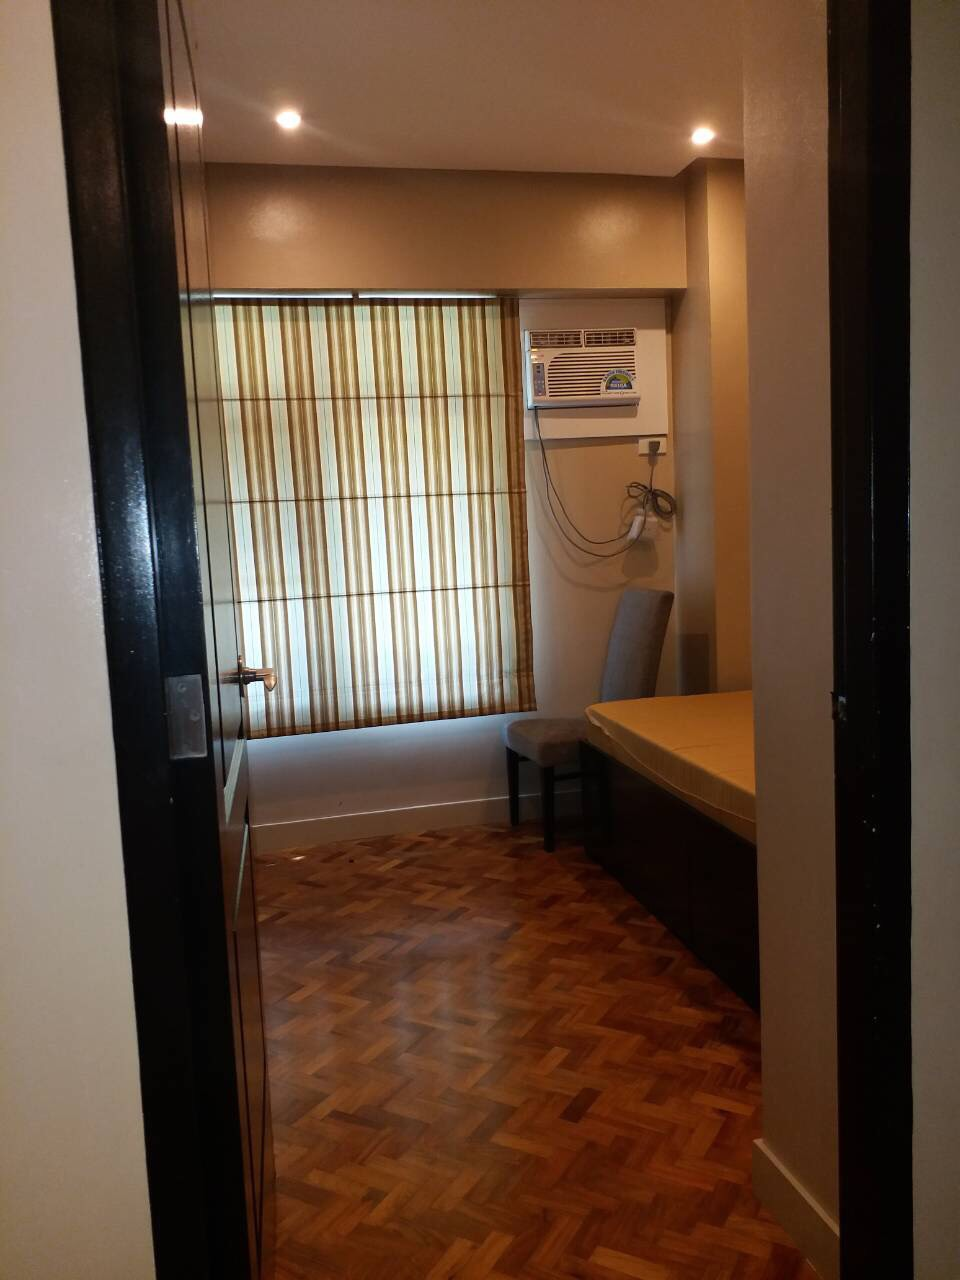 For Rent, Almond, Two Serendra, BGC, Taguig City Bedroom 1 View